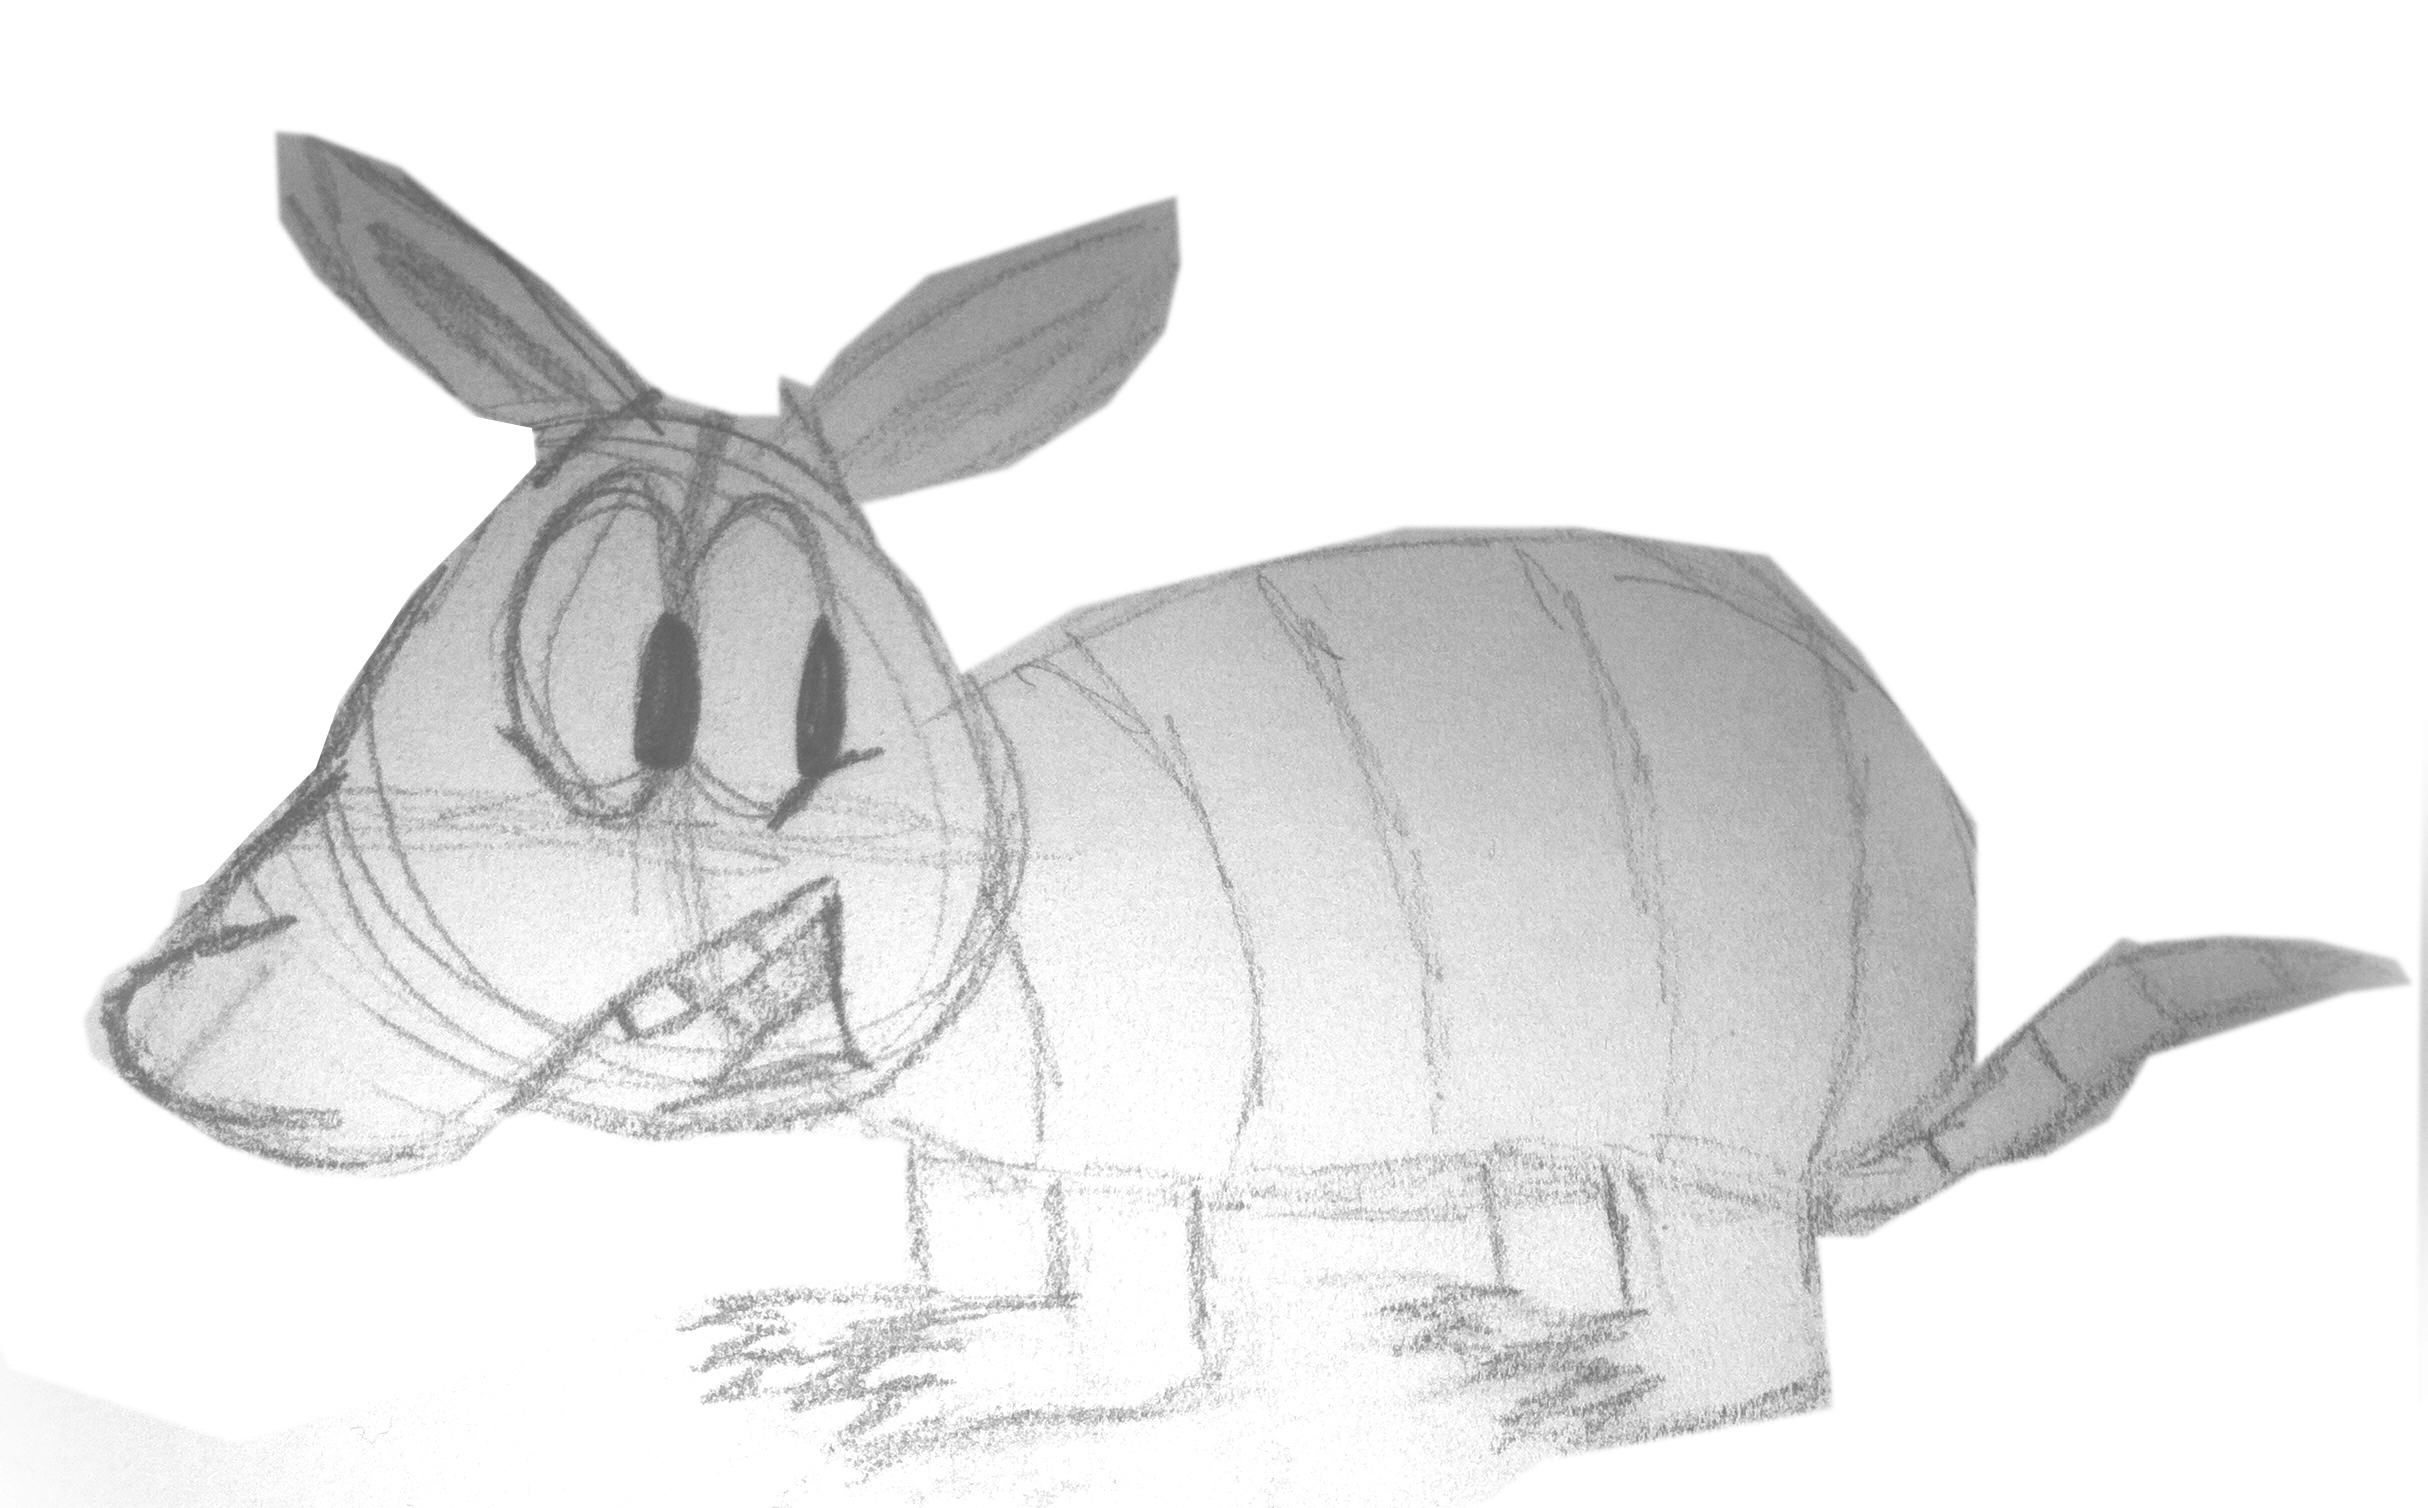 armadillo drawing onlinelabels clip art armadillo armadillo drawing